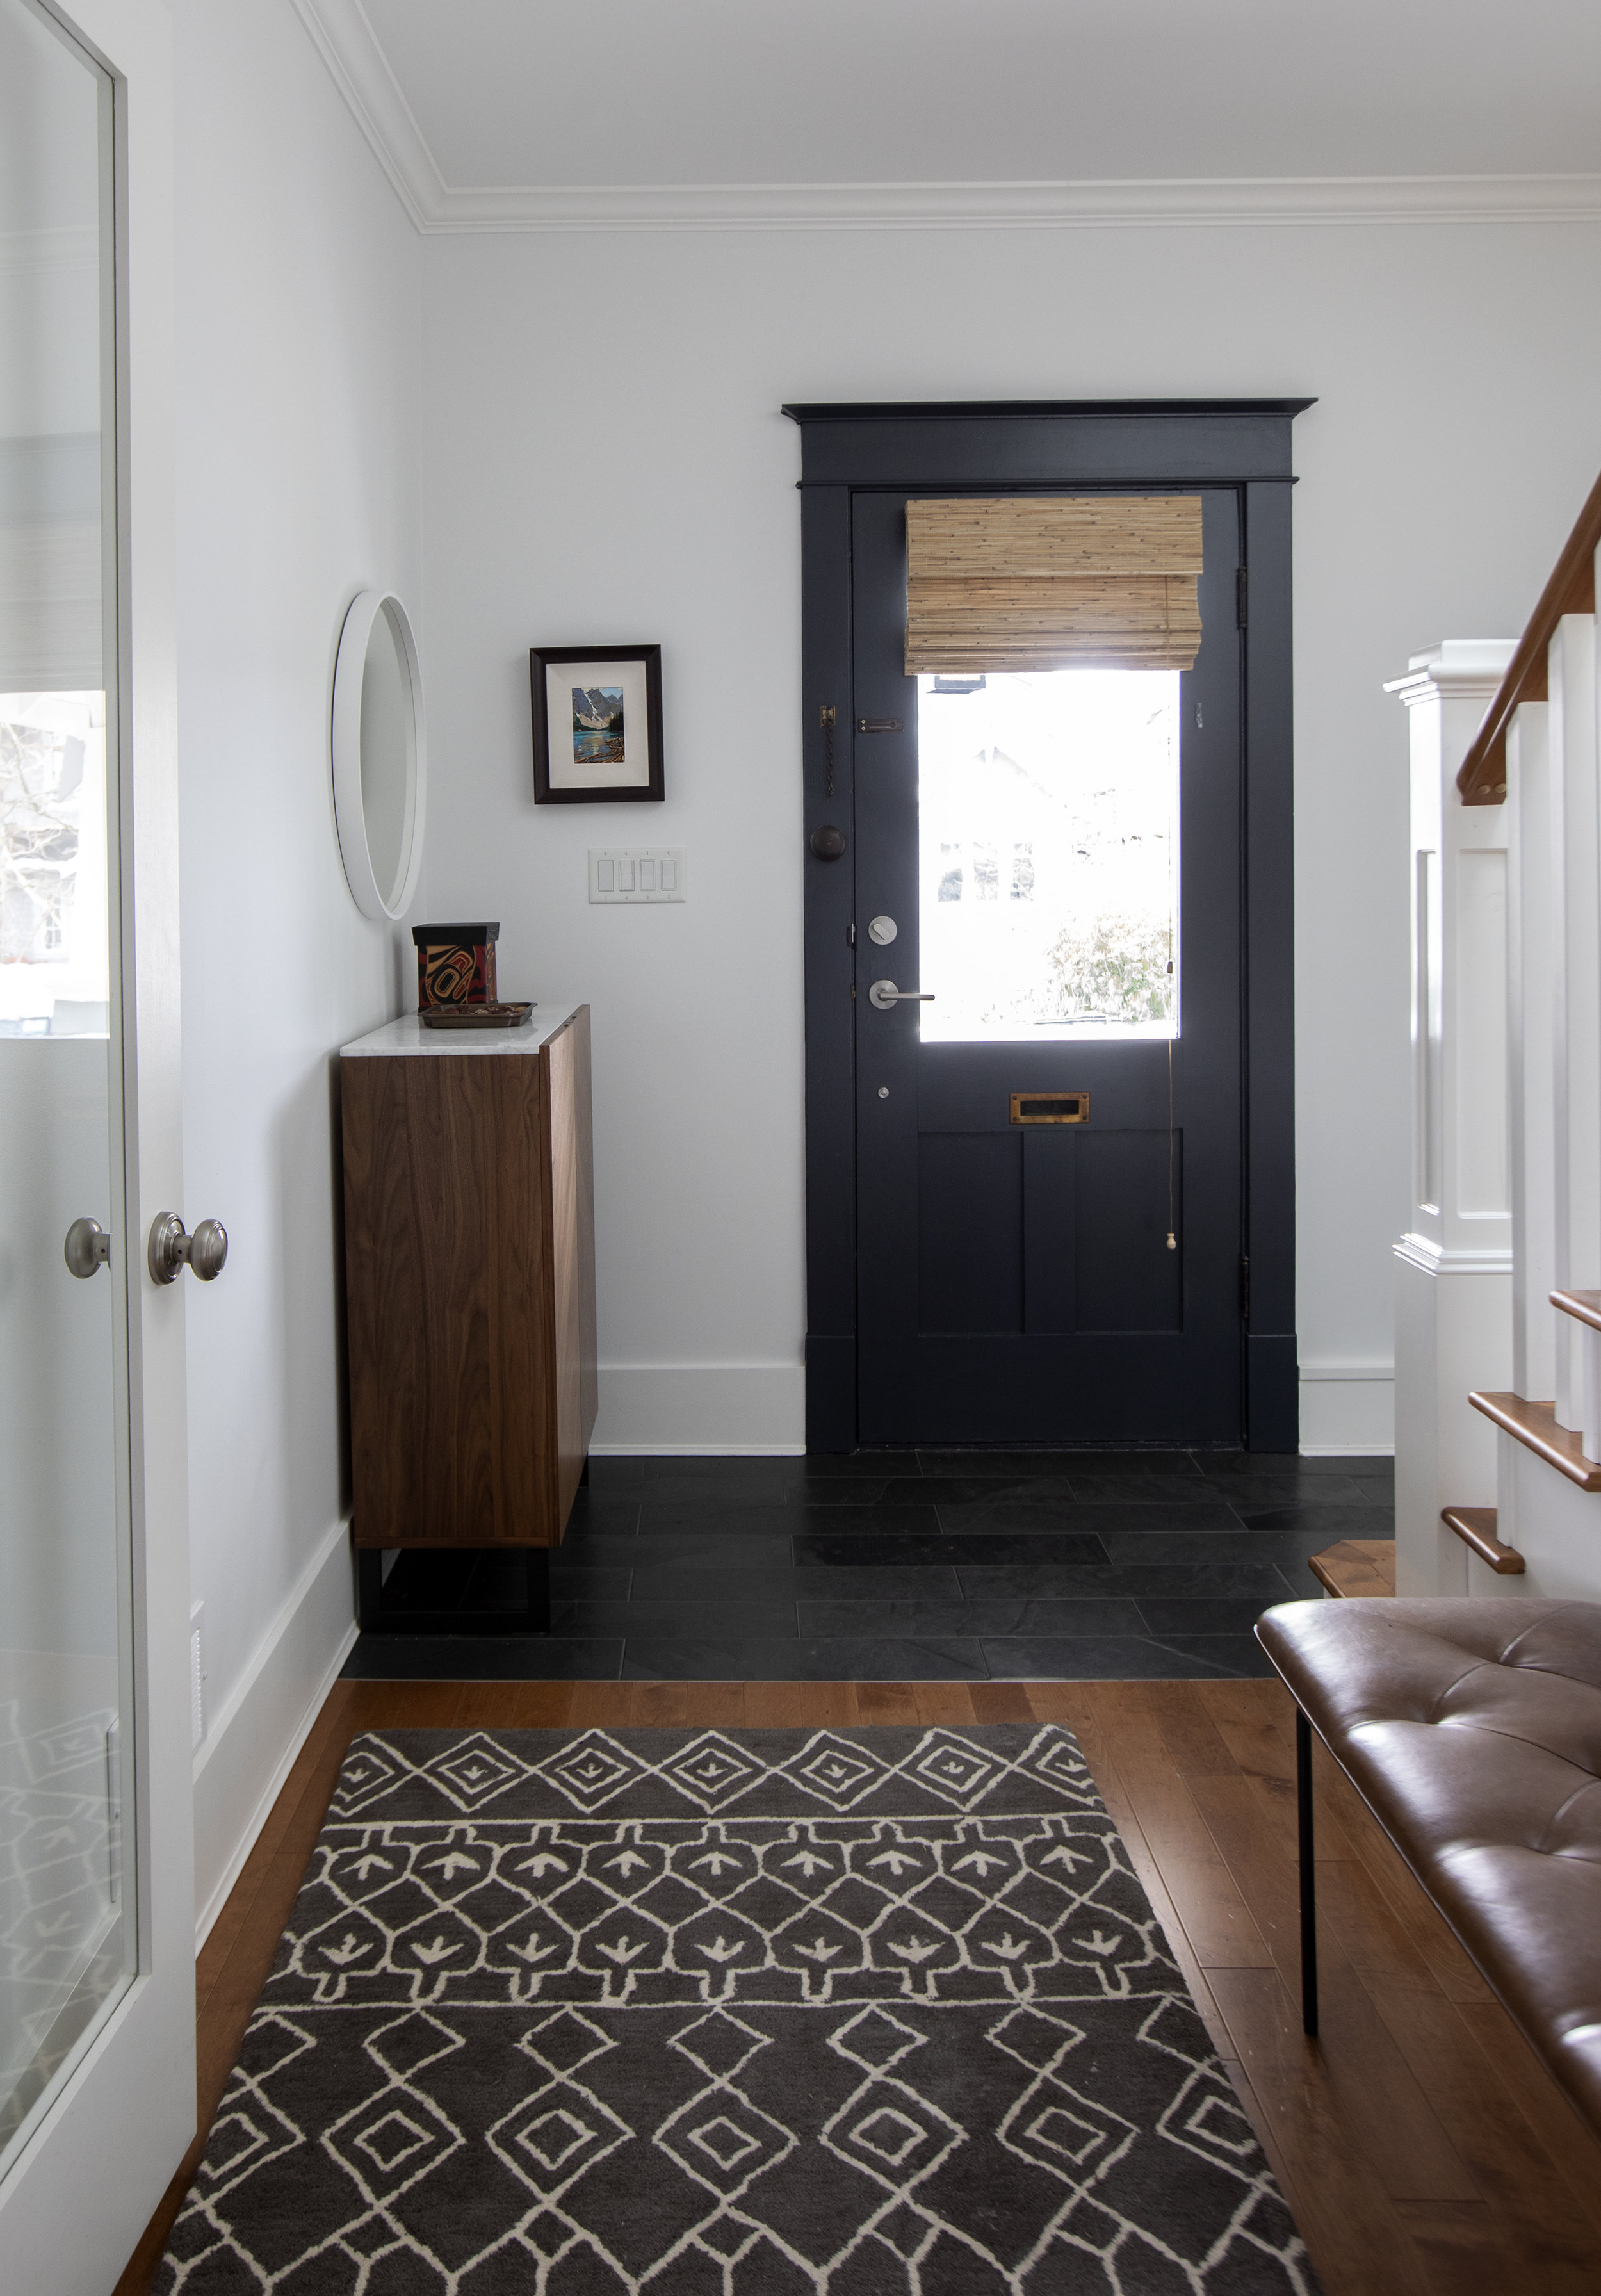 The front hallway of this house, a geometric floor runner leads to the front door, which is painted black. To the left is a darker wooden dresser with a white top, and hanging above that is a decorative white mirror